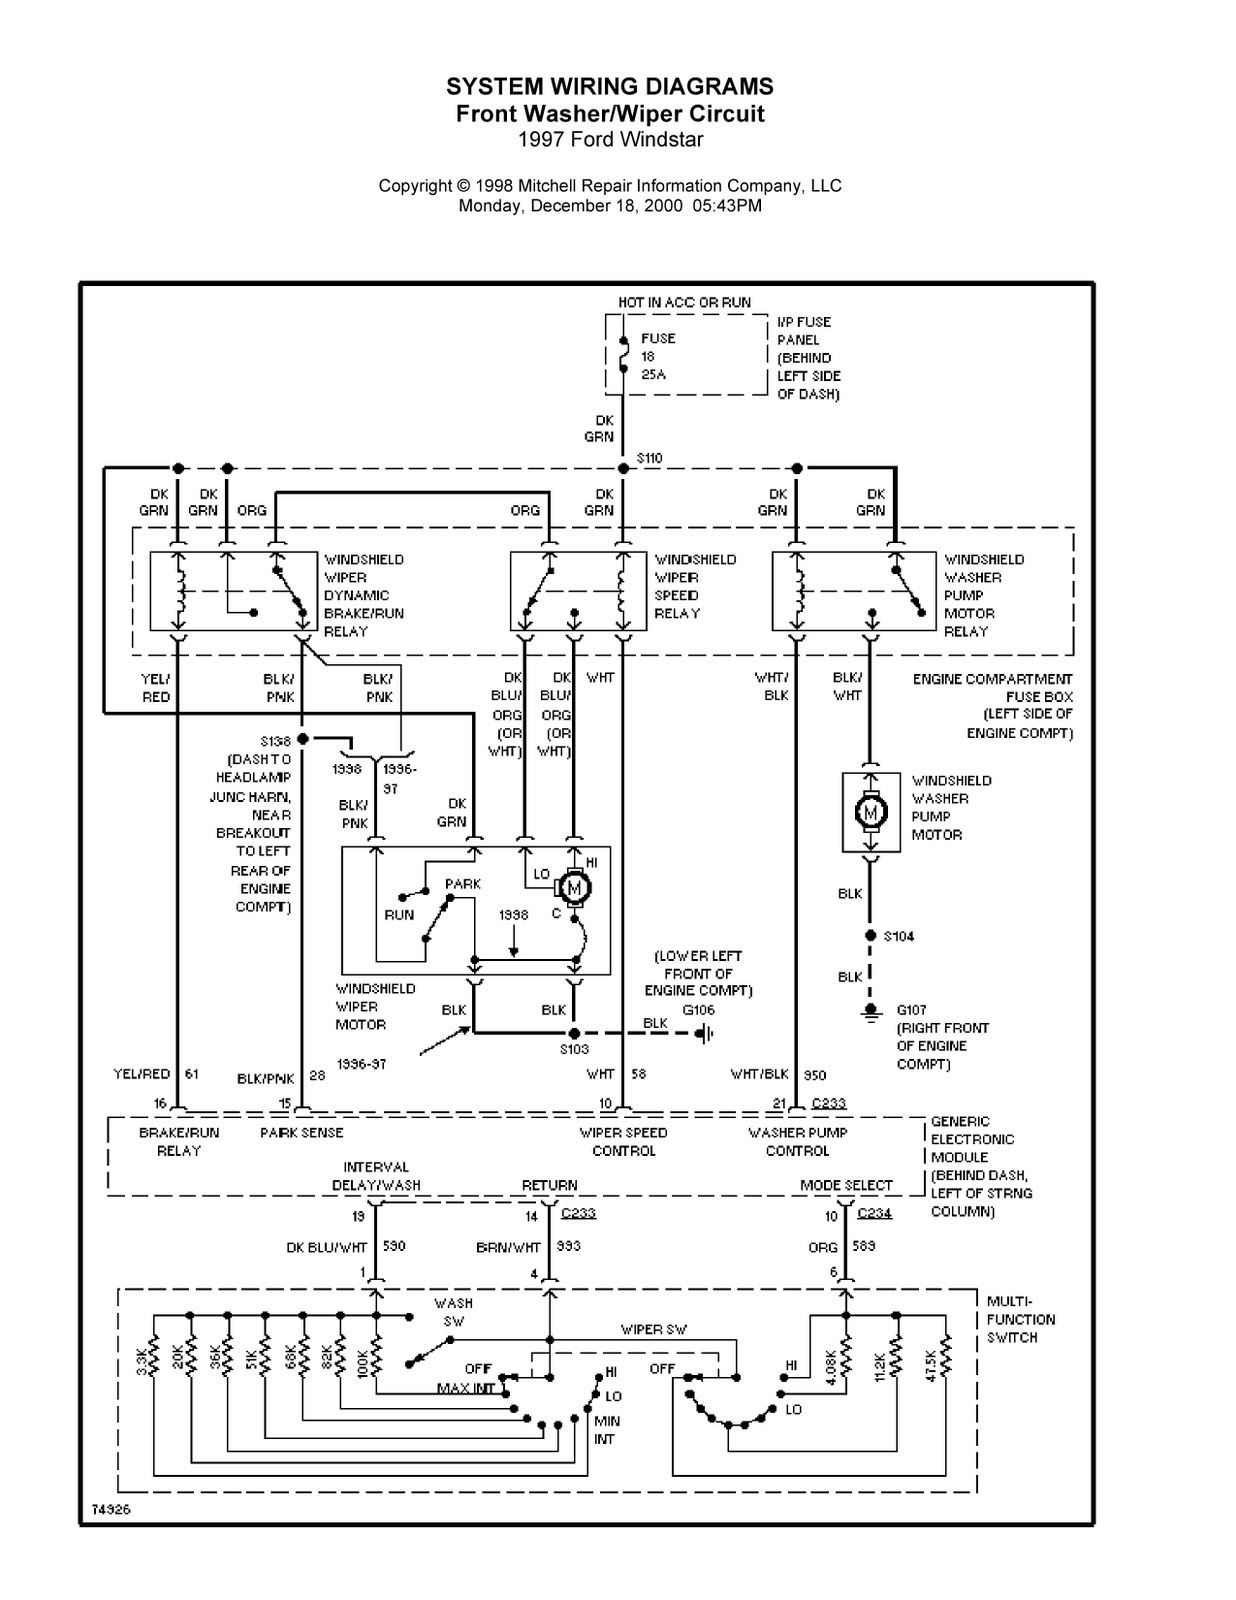 1997 ford windstar system wiring diagrams for front washer wiper circuit schematic wiring